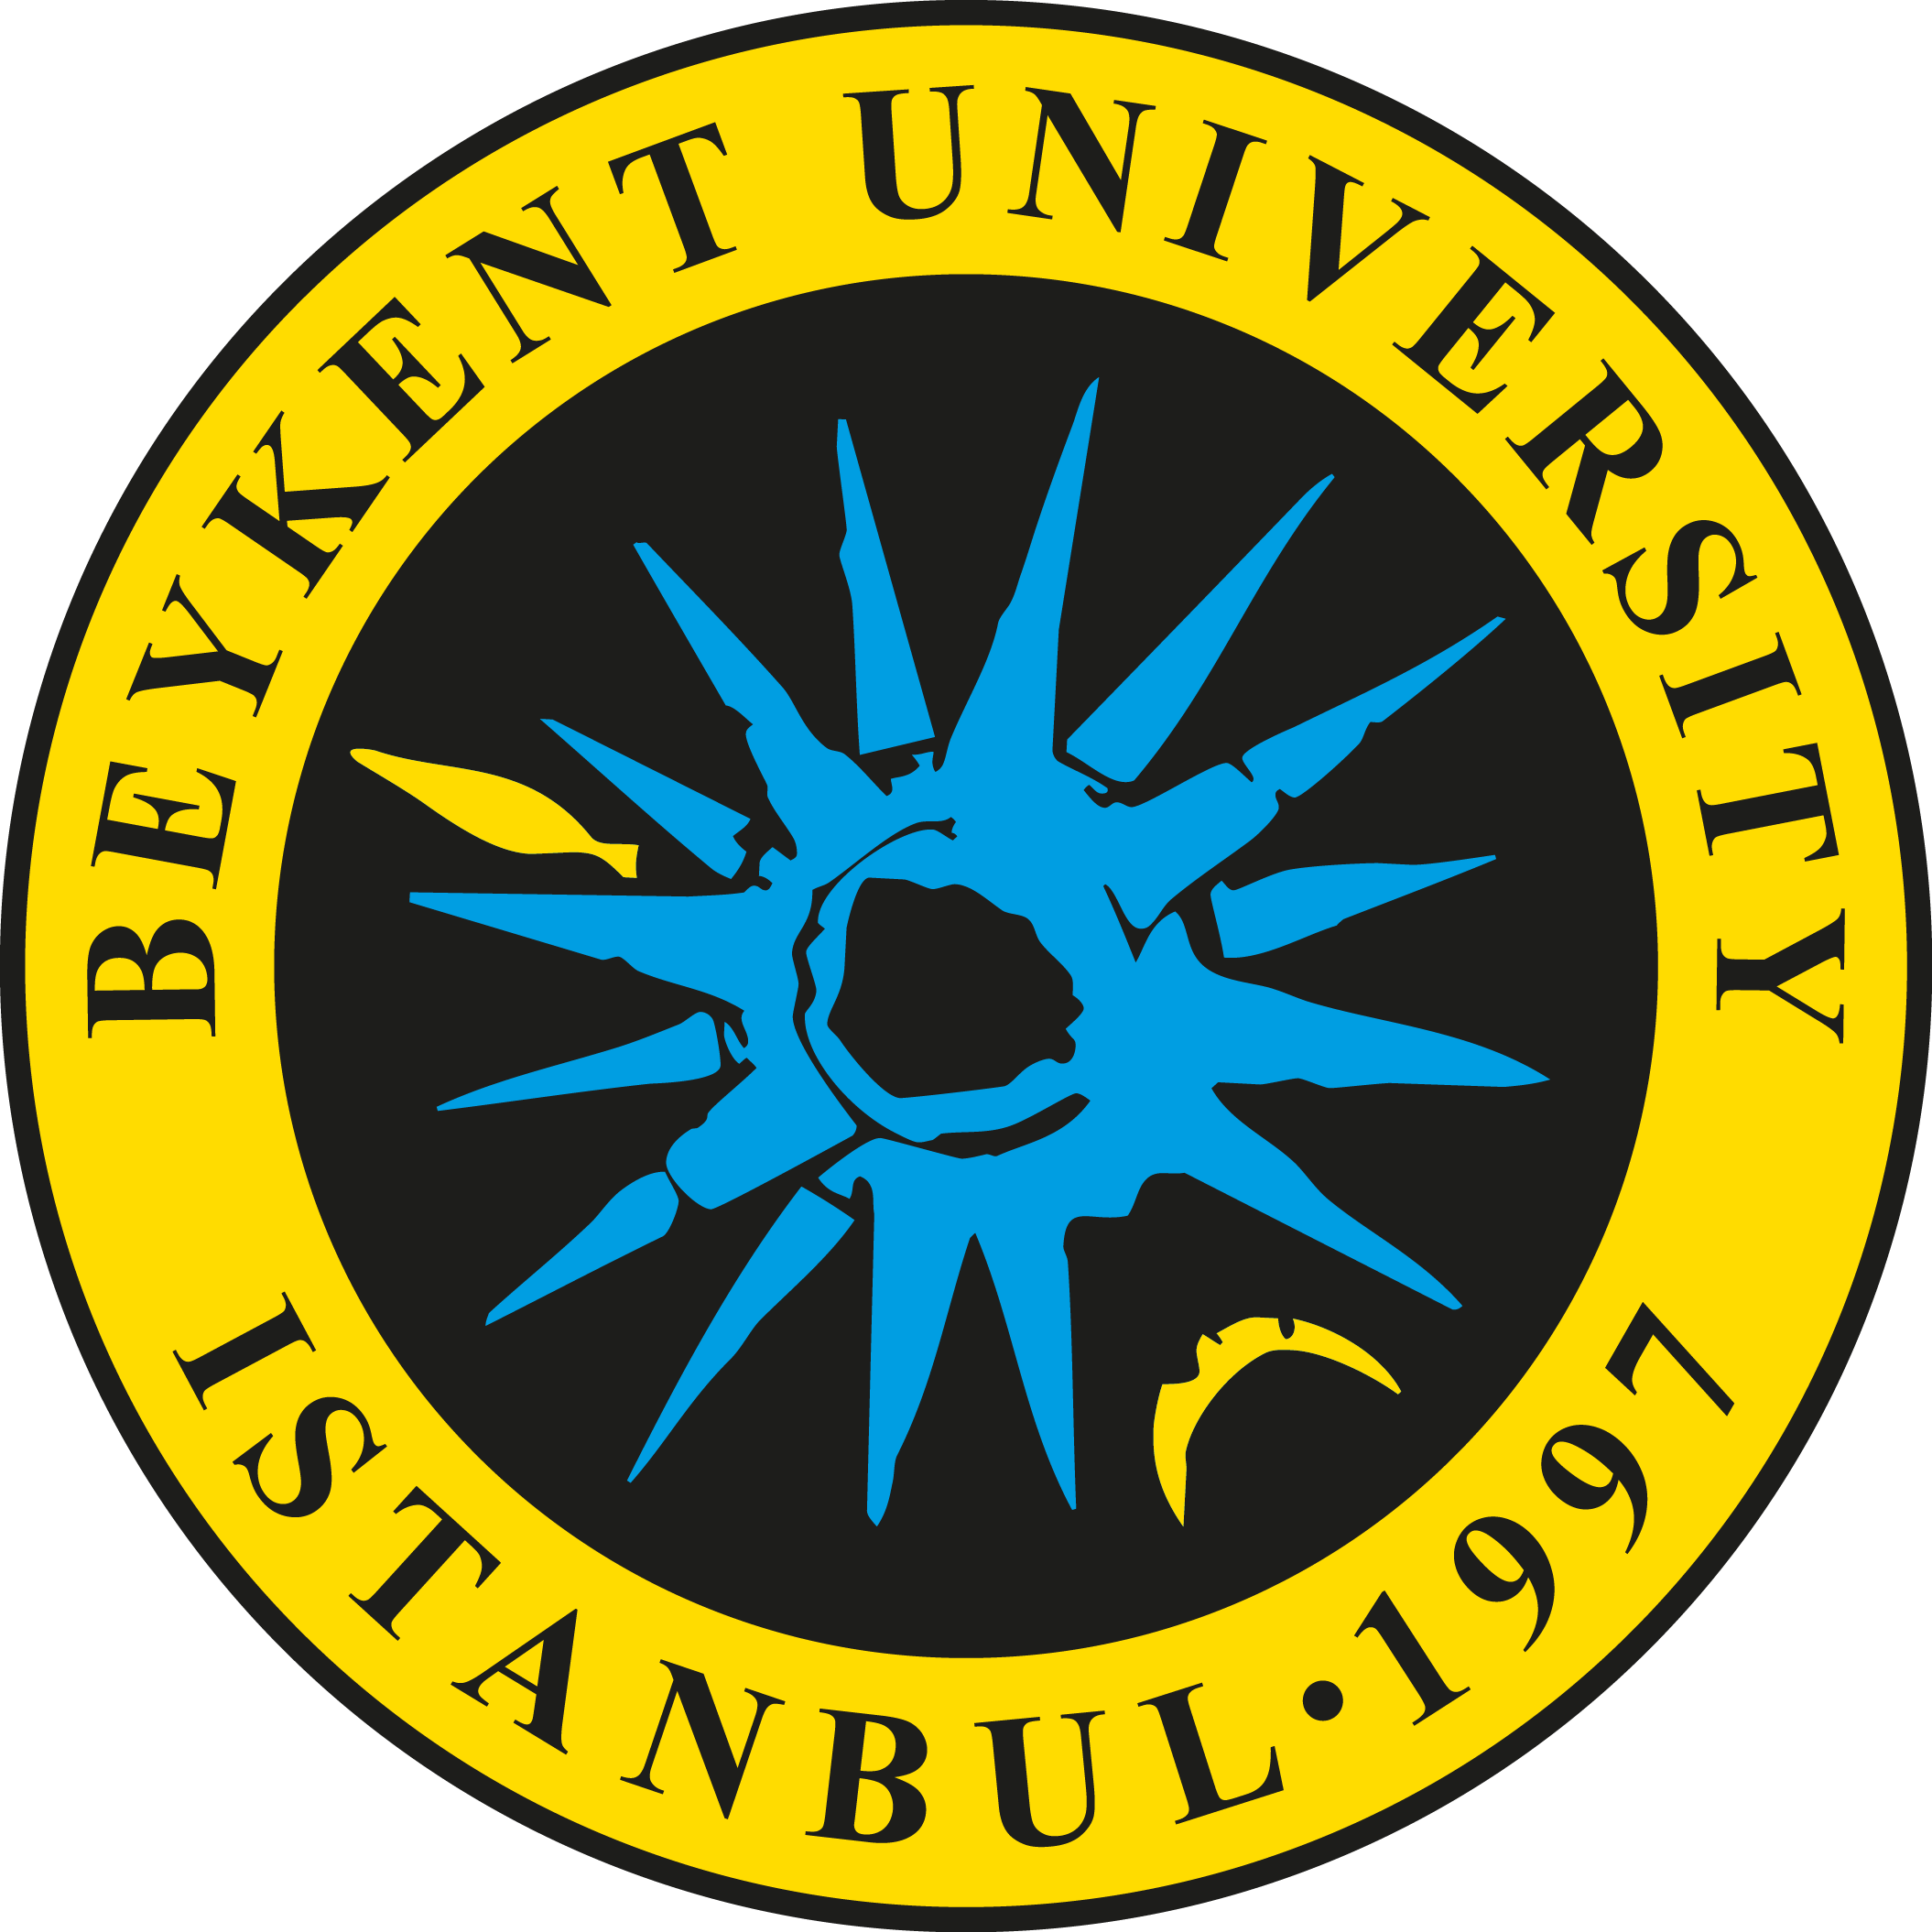 beykent university logo